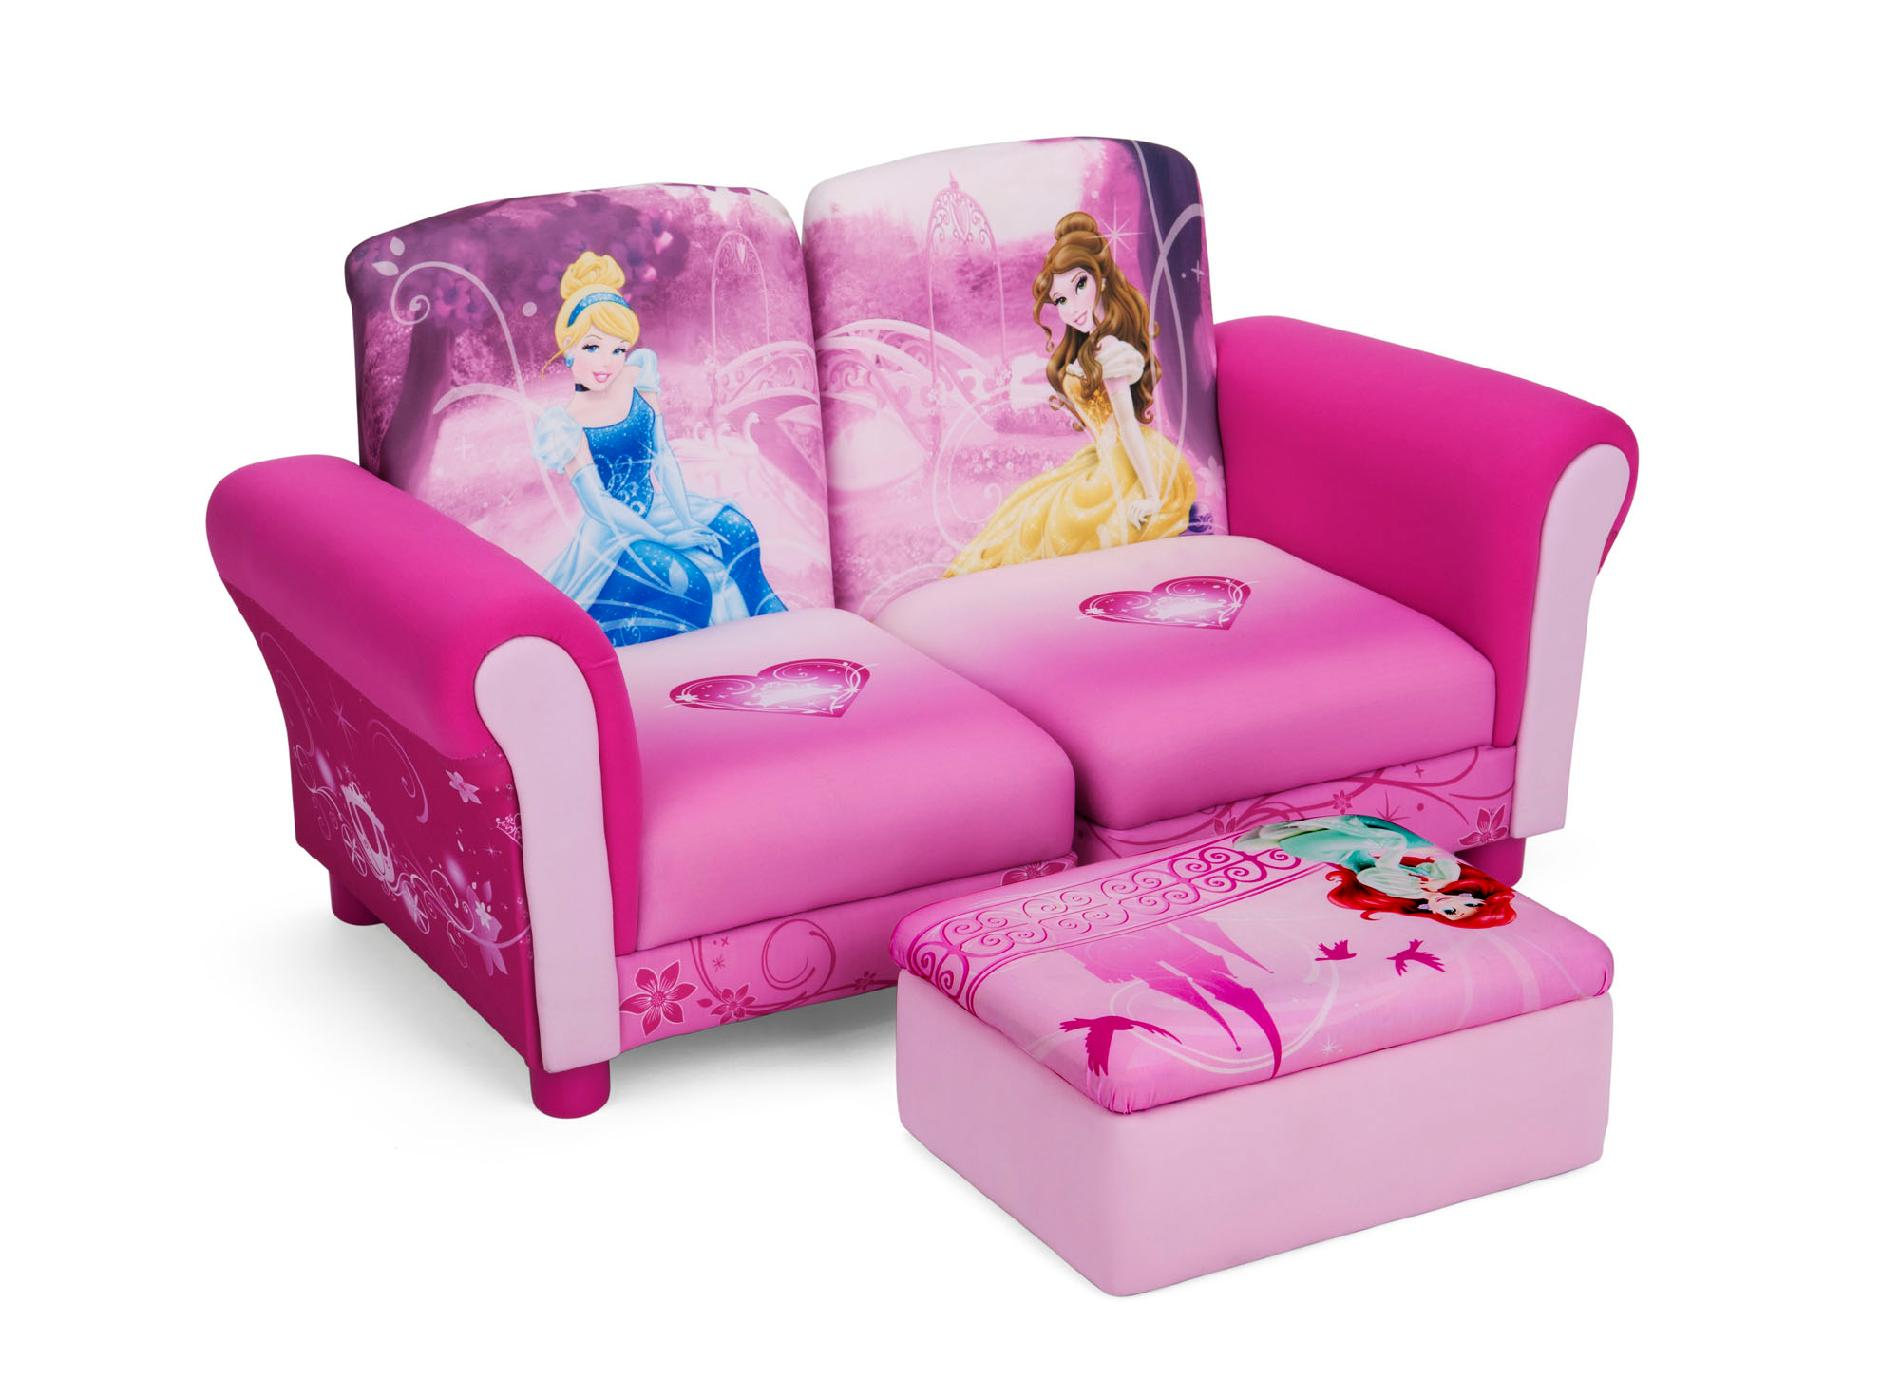 childrens upholstered chair lightweight aluminum beach chairs delta children disney princess 3 pc